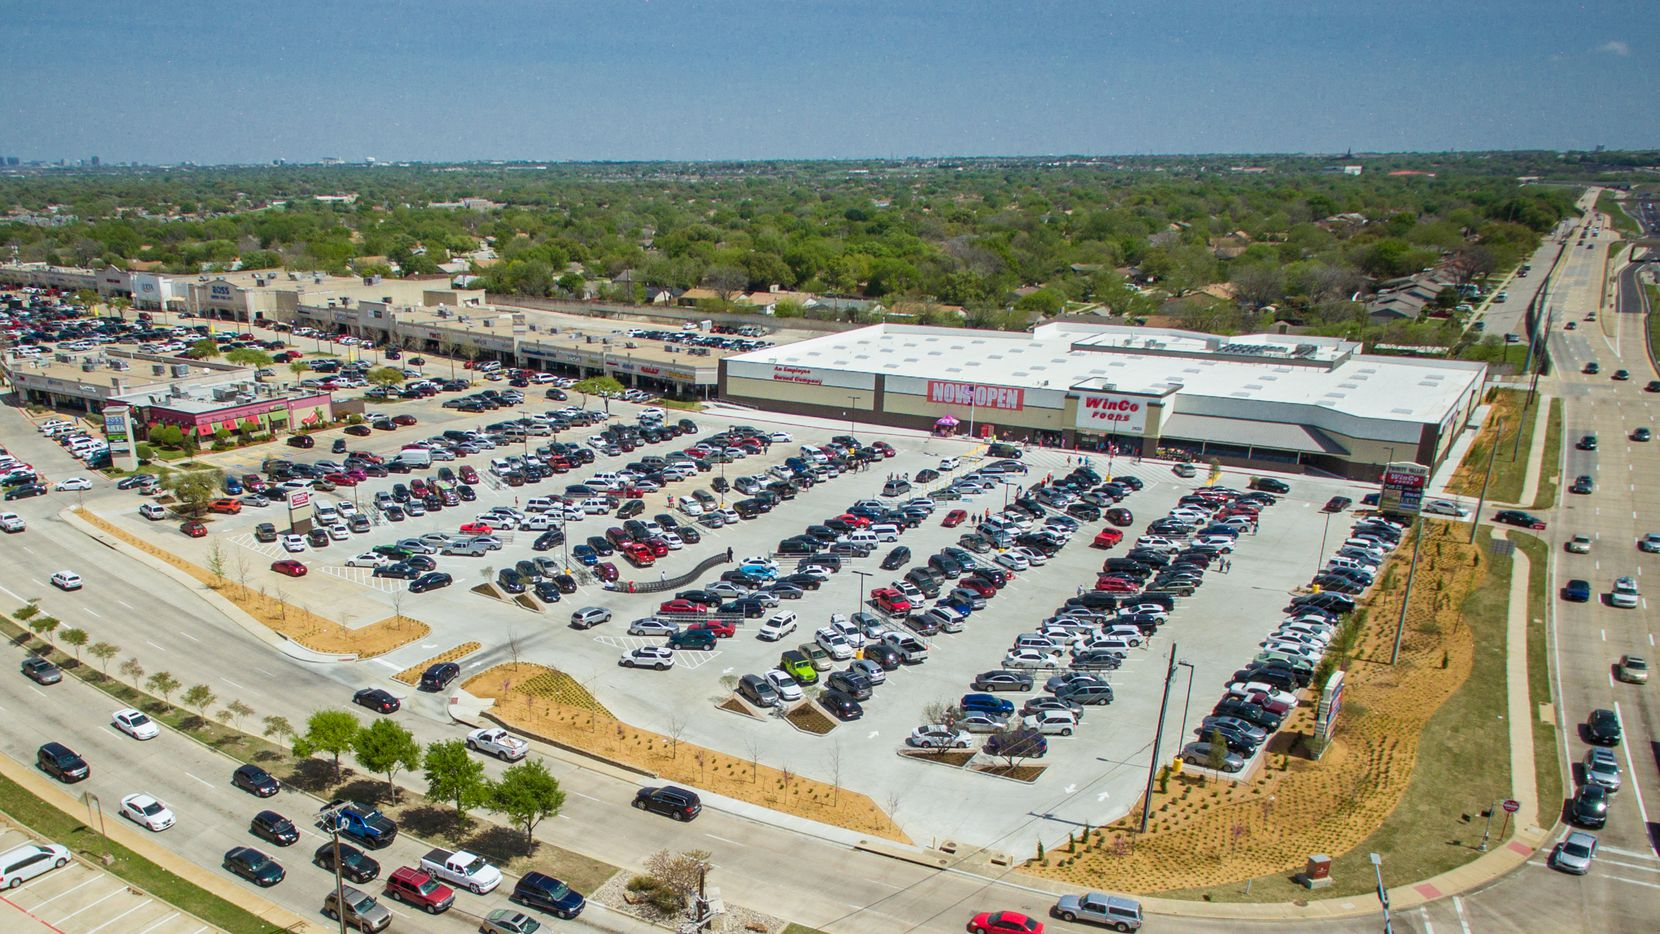 A new WinCo supermarket replaced a vacant space at this Carrollton shopping center.